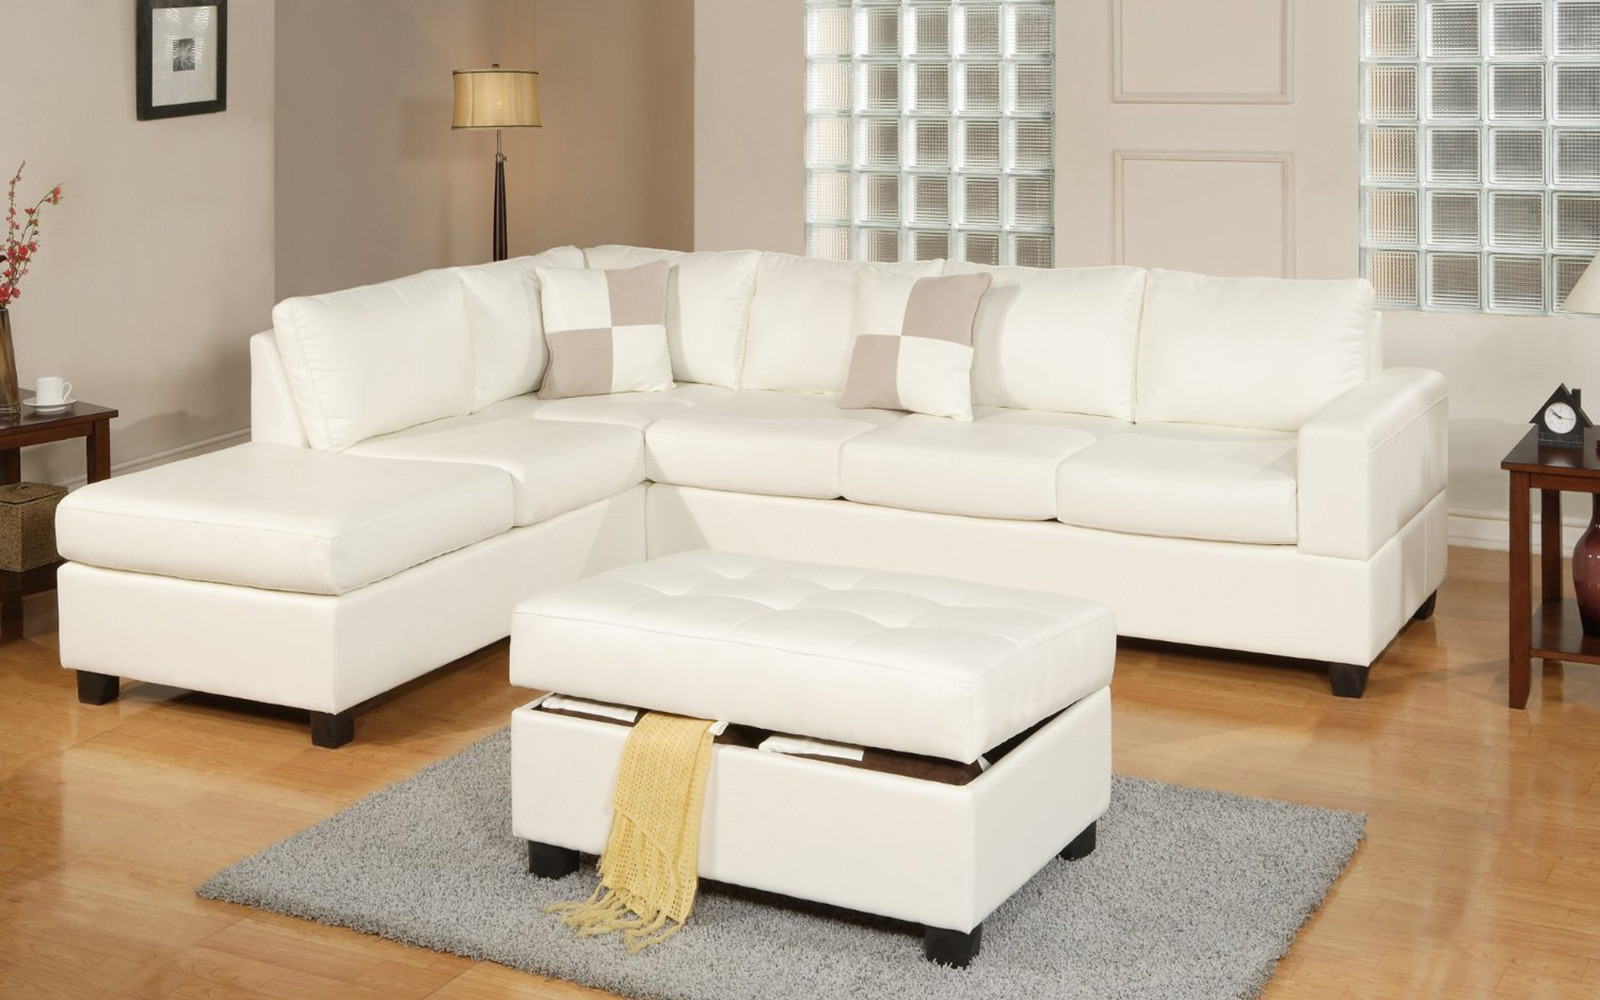 white sectional sofa 3 piece modern reversible tufted bonded leather sectional sofa with ottoman  - CYCLSMZ